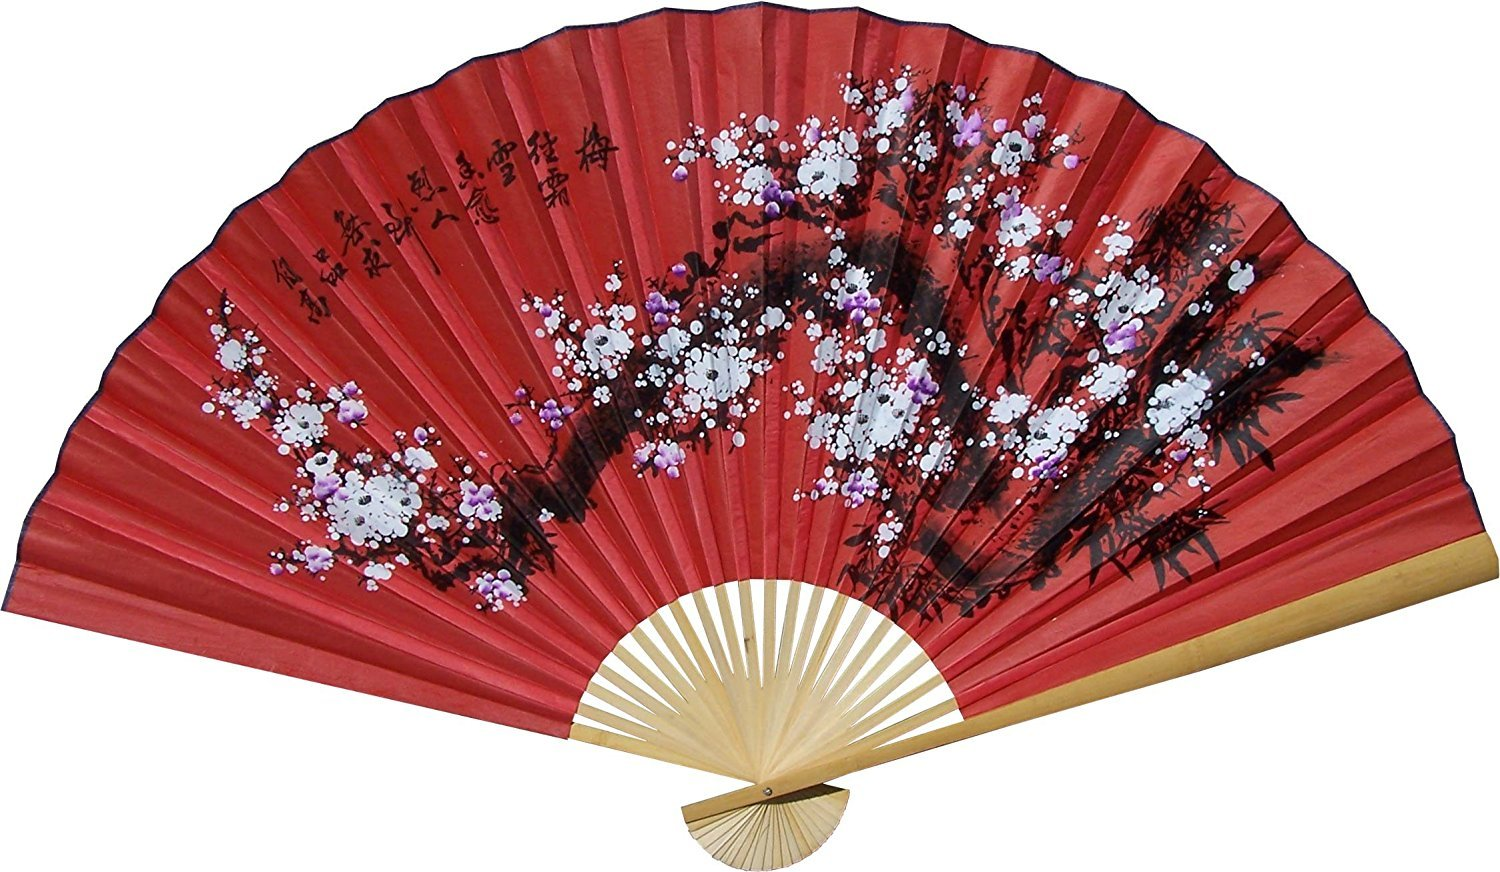 1 X Large 60' Folding Wall Fan -- Prosperity Blossoms -- Original Hand-painted Oriental-Decor 3117-35